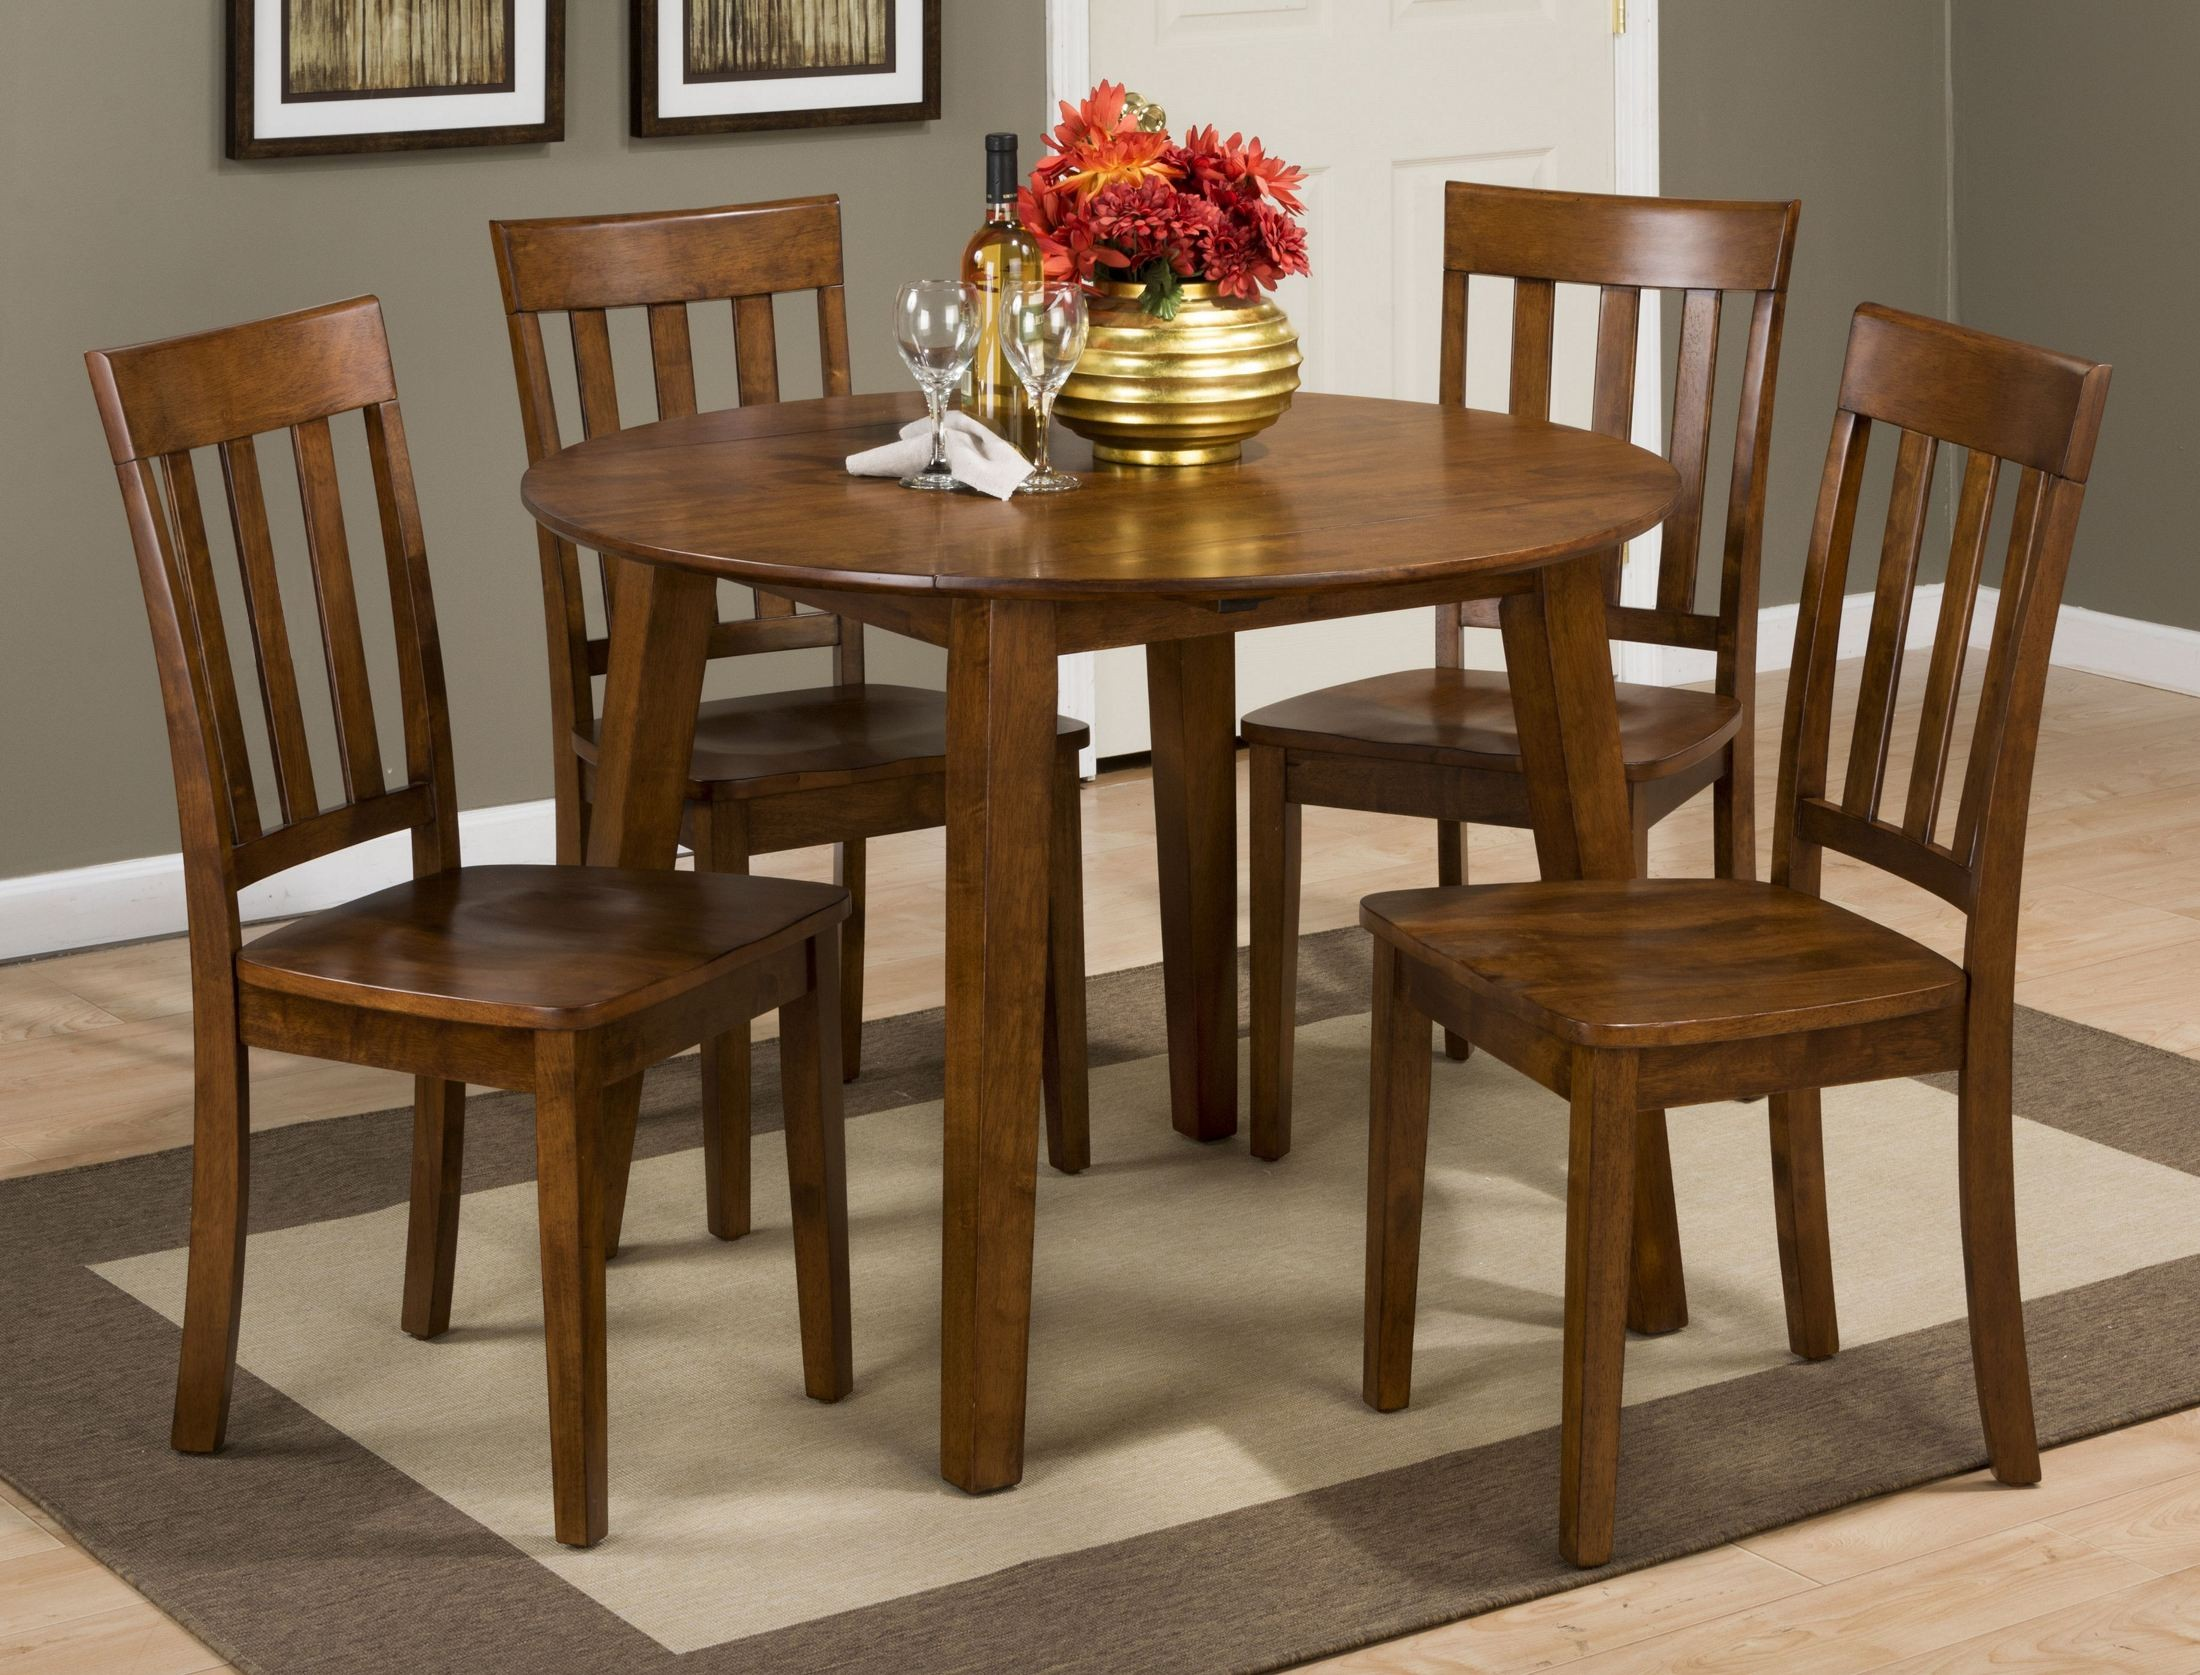 Simplicity Caramel Extendable Round Drop Leaf Dining Room Set 452 28 Jofran